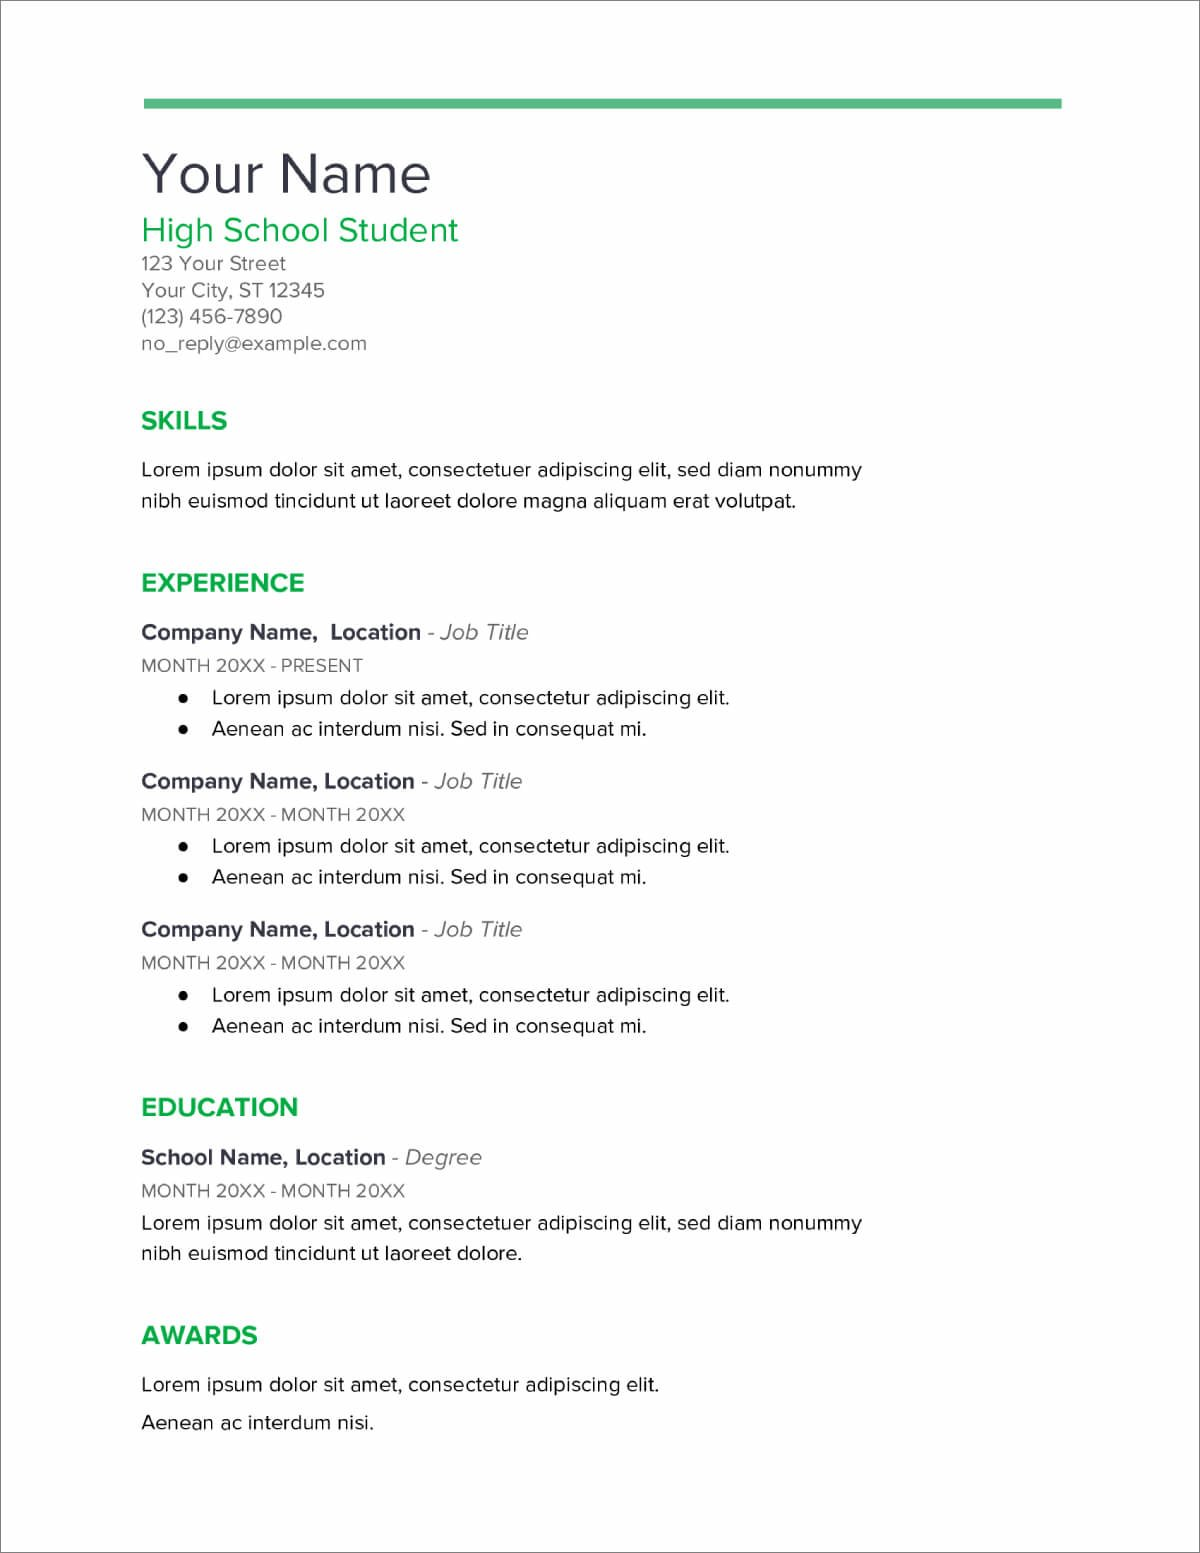 20 High School Resume Templates Download Now